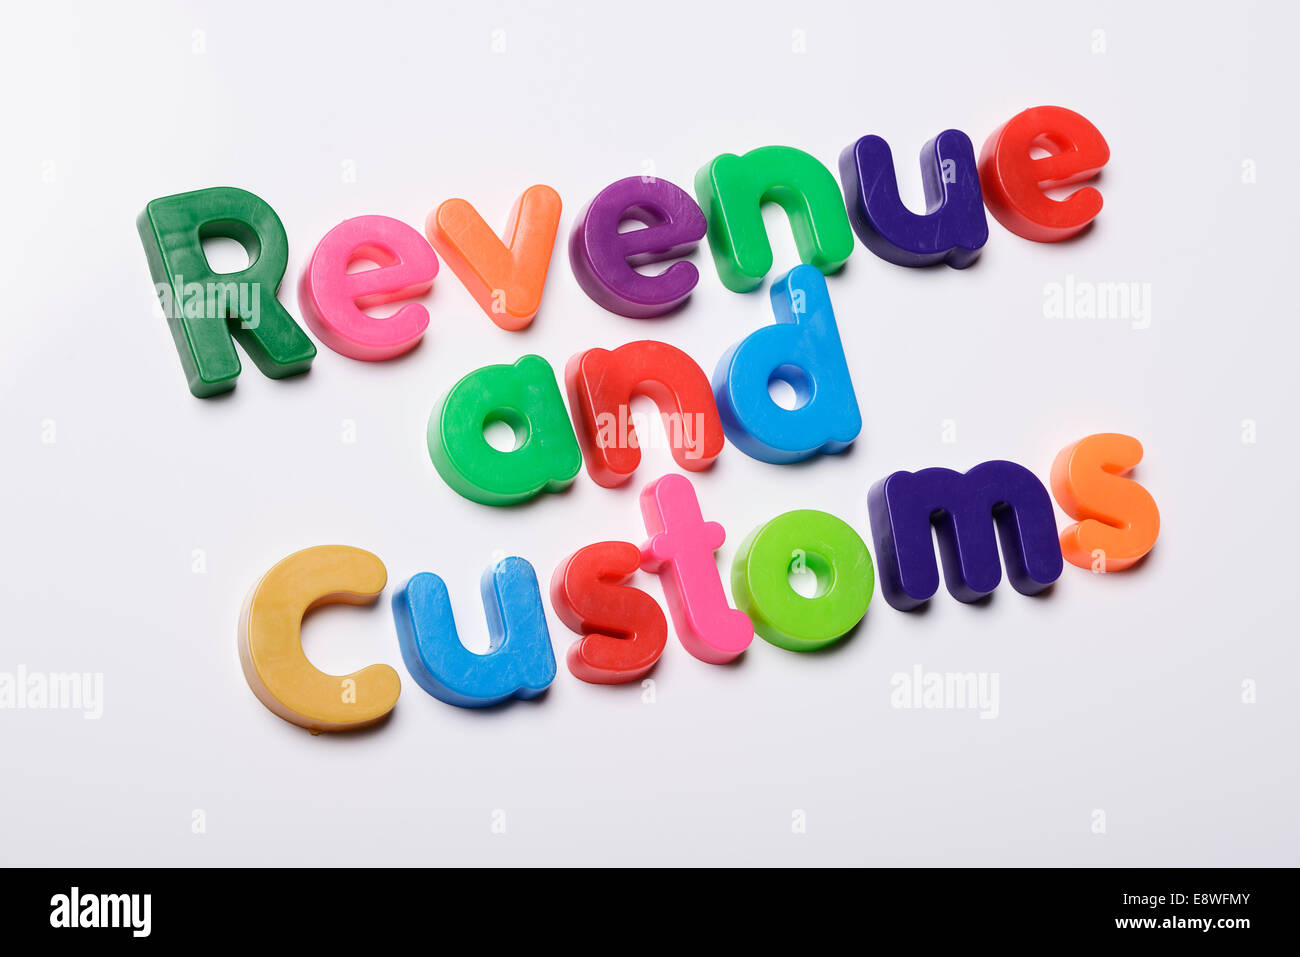 Revenue and Customs made from magnetic fridge letters - Stock Image